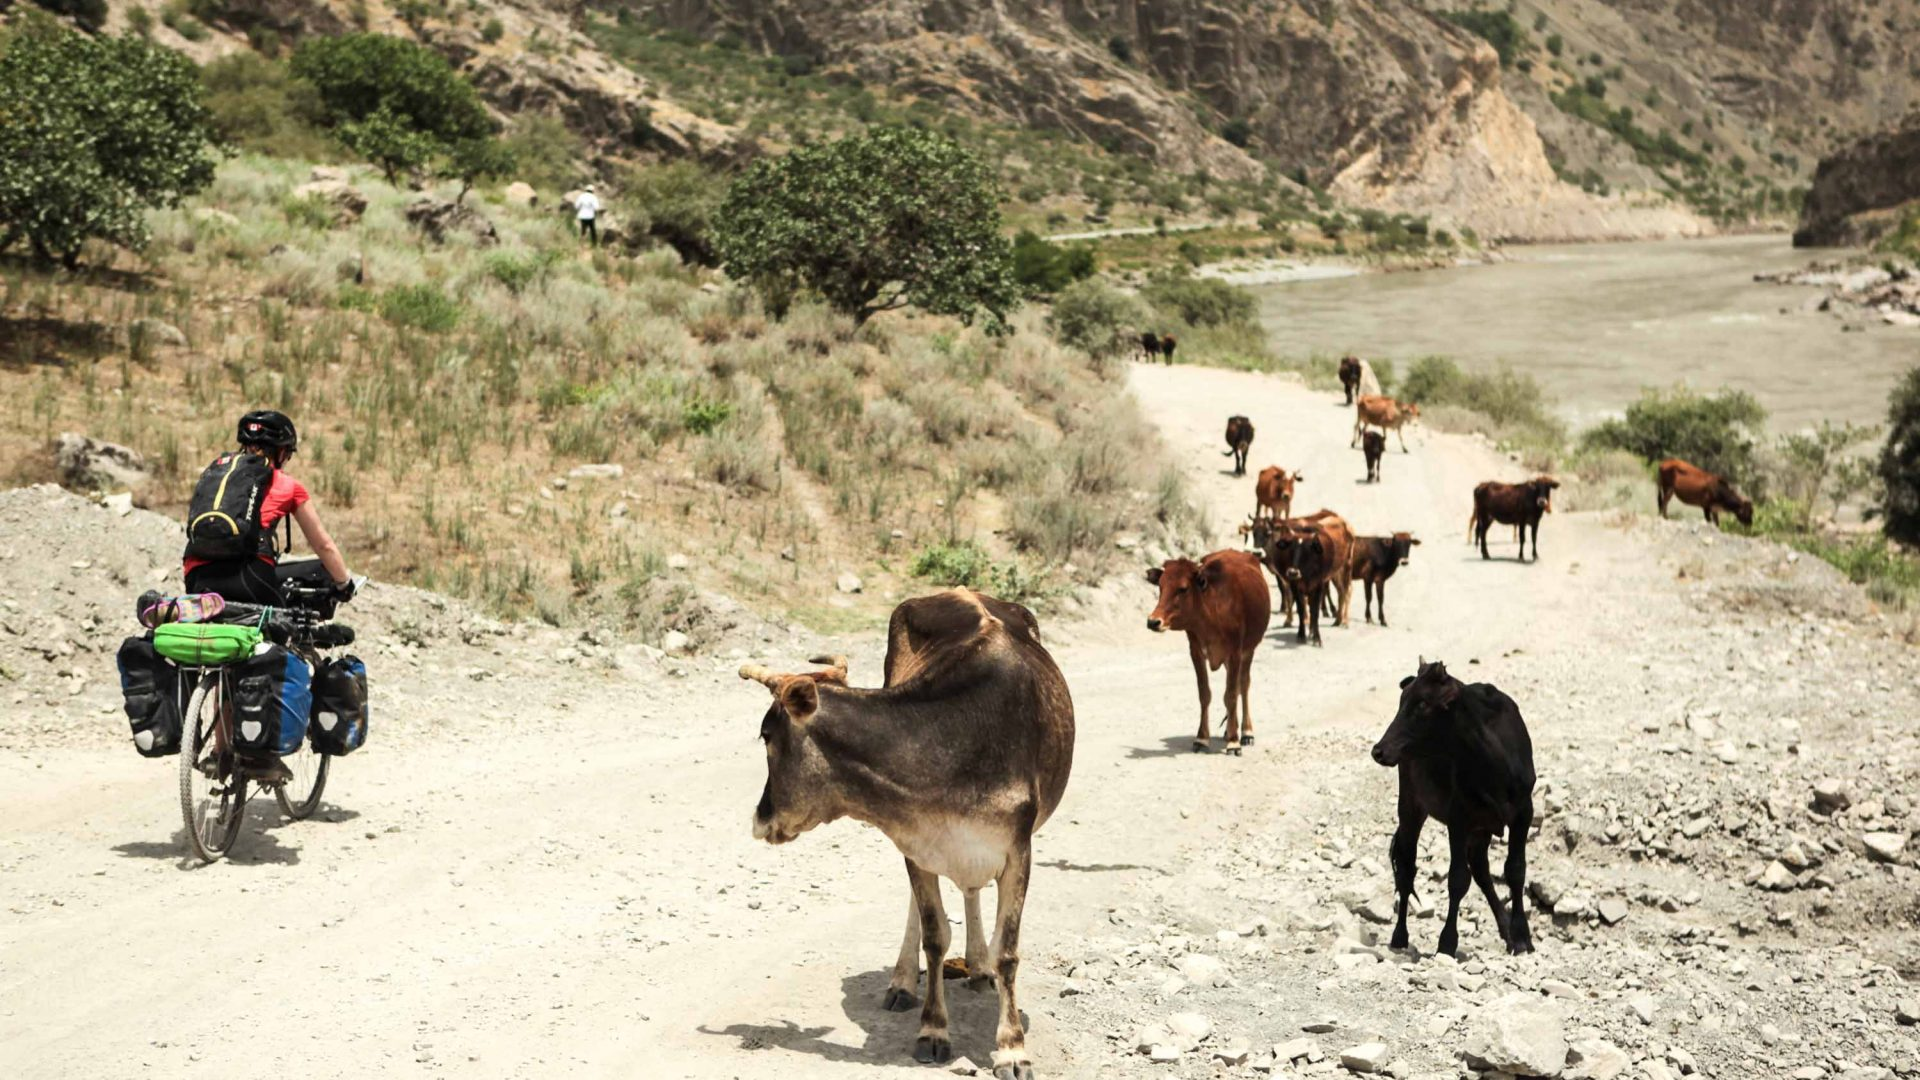 Cycling past cows on the road in Tajikistan.